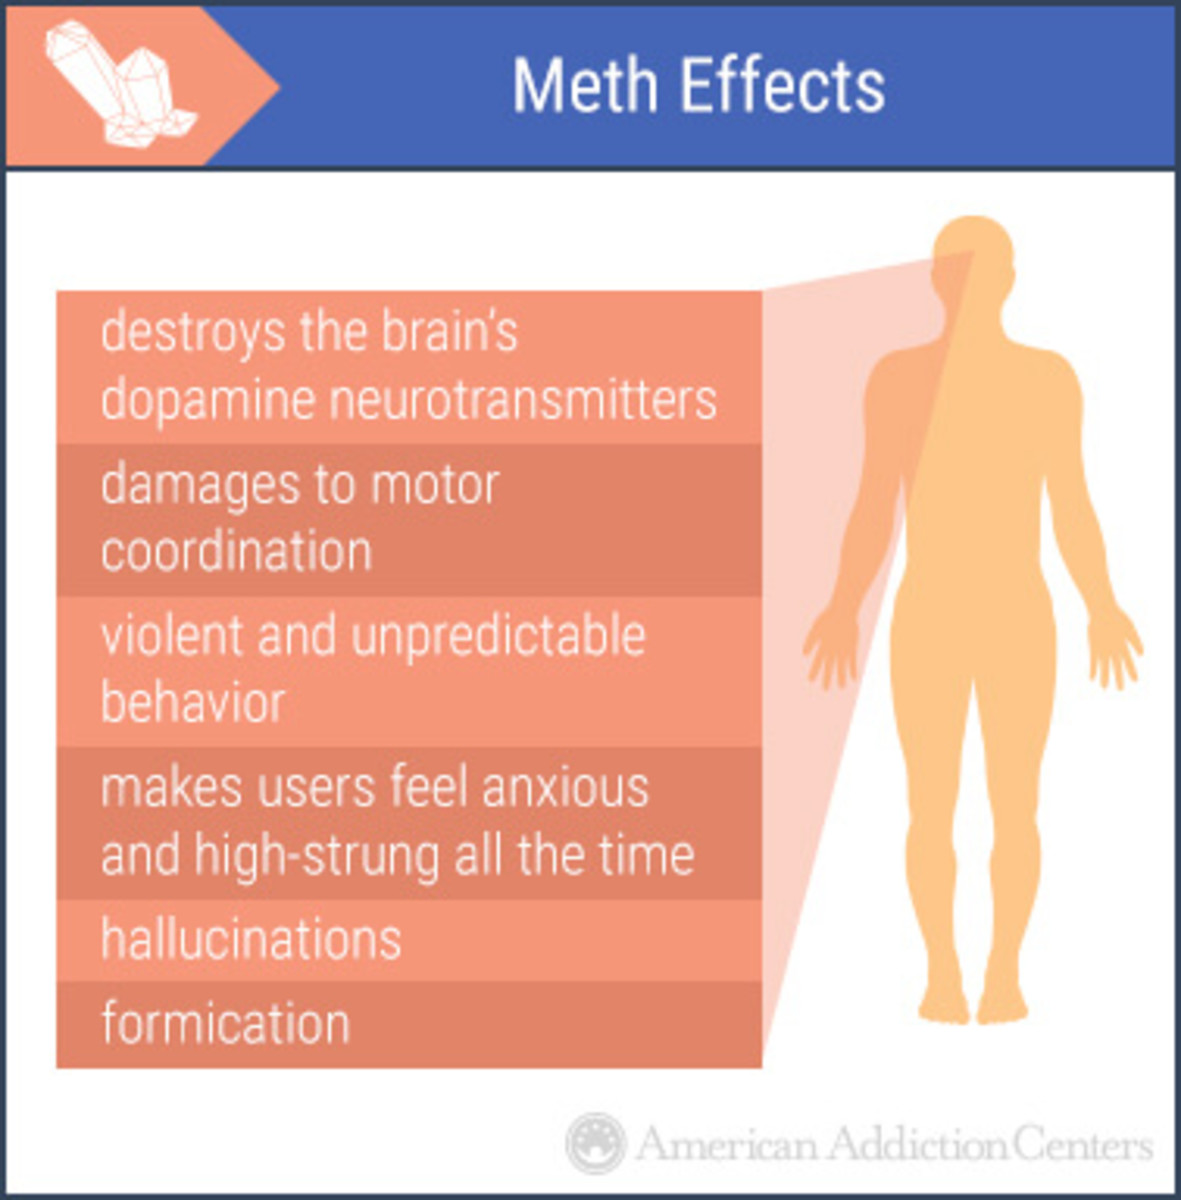 Drug abuse has devastating effects on the mind, behavior, and relationships. But the permanent damage of drugs can destroy vital system functions that can lead to disability and death.